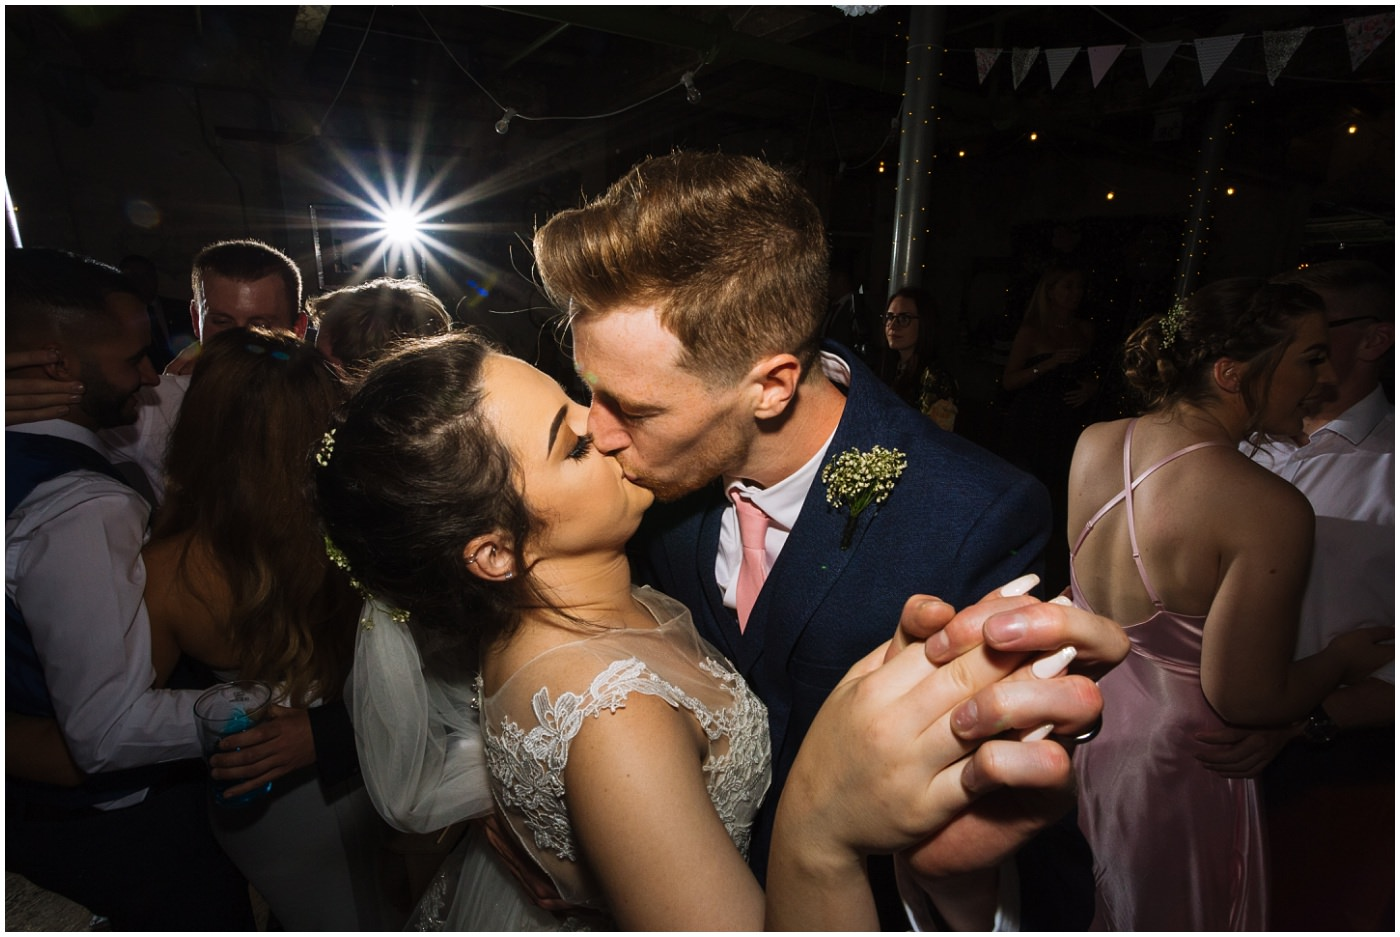 bride and groom kiss on dance floor surrounded by wedding guests